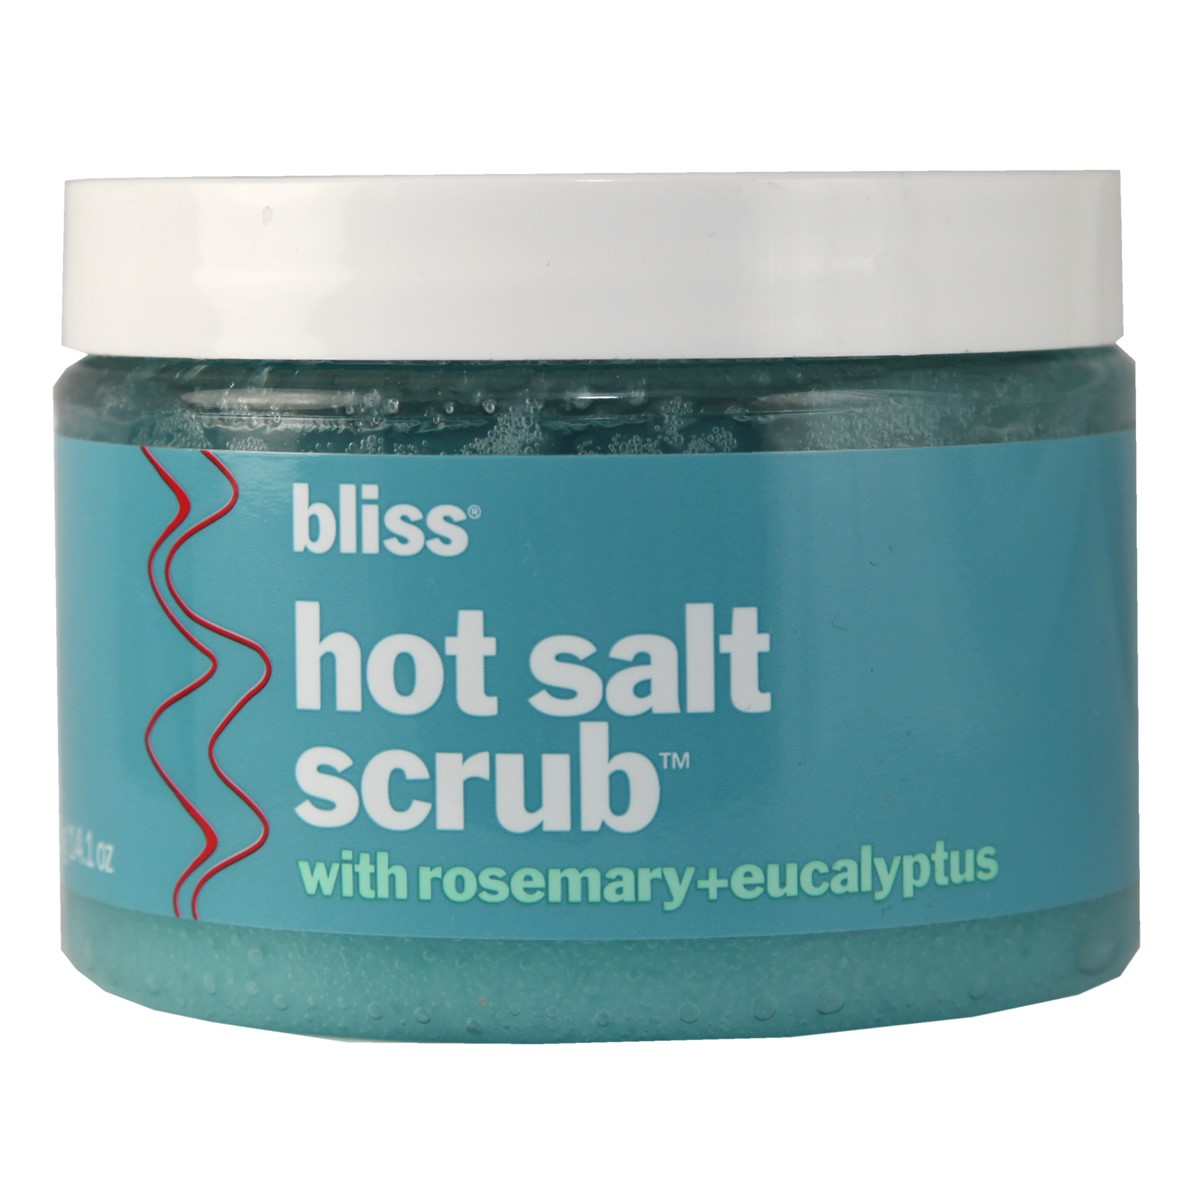 Bliss Hot Salt Scrub with Rosemary+ Eucalyptus